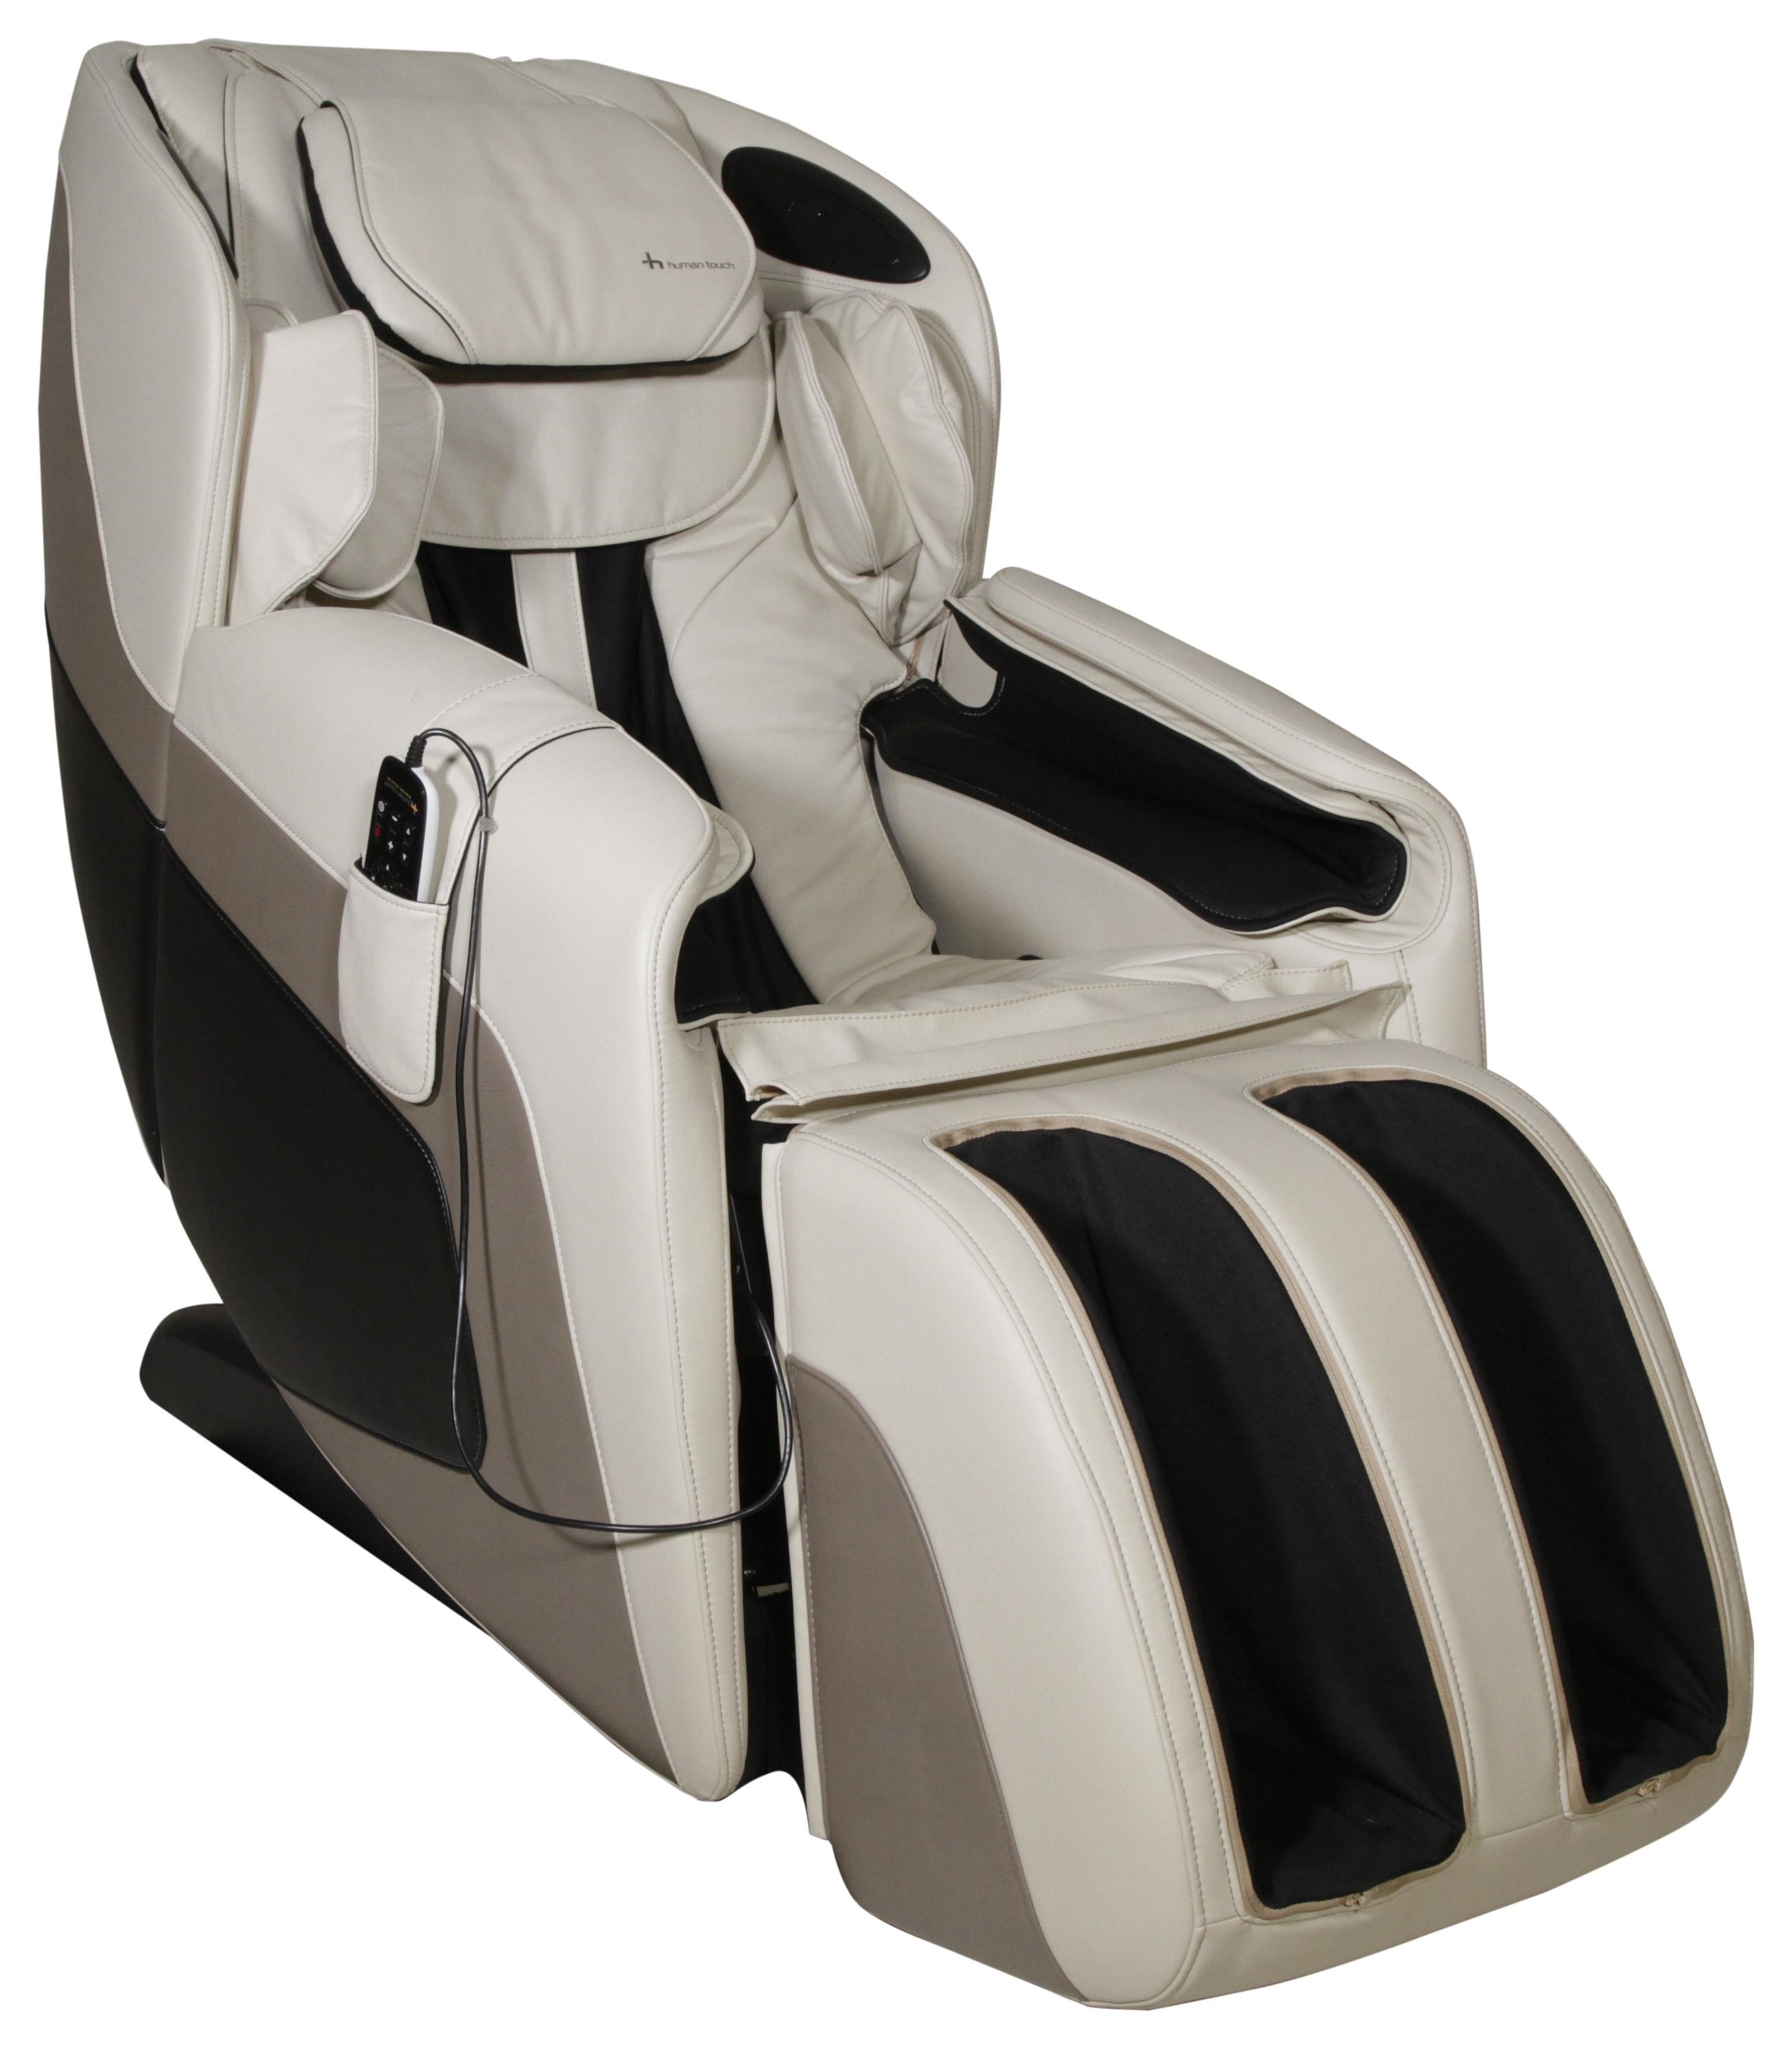 Sana Massage Chair by Human Touch at HomeWorld Furniture